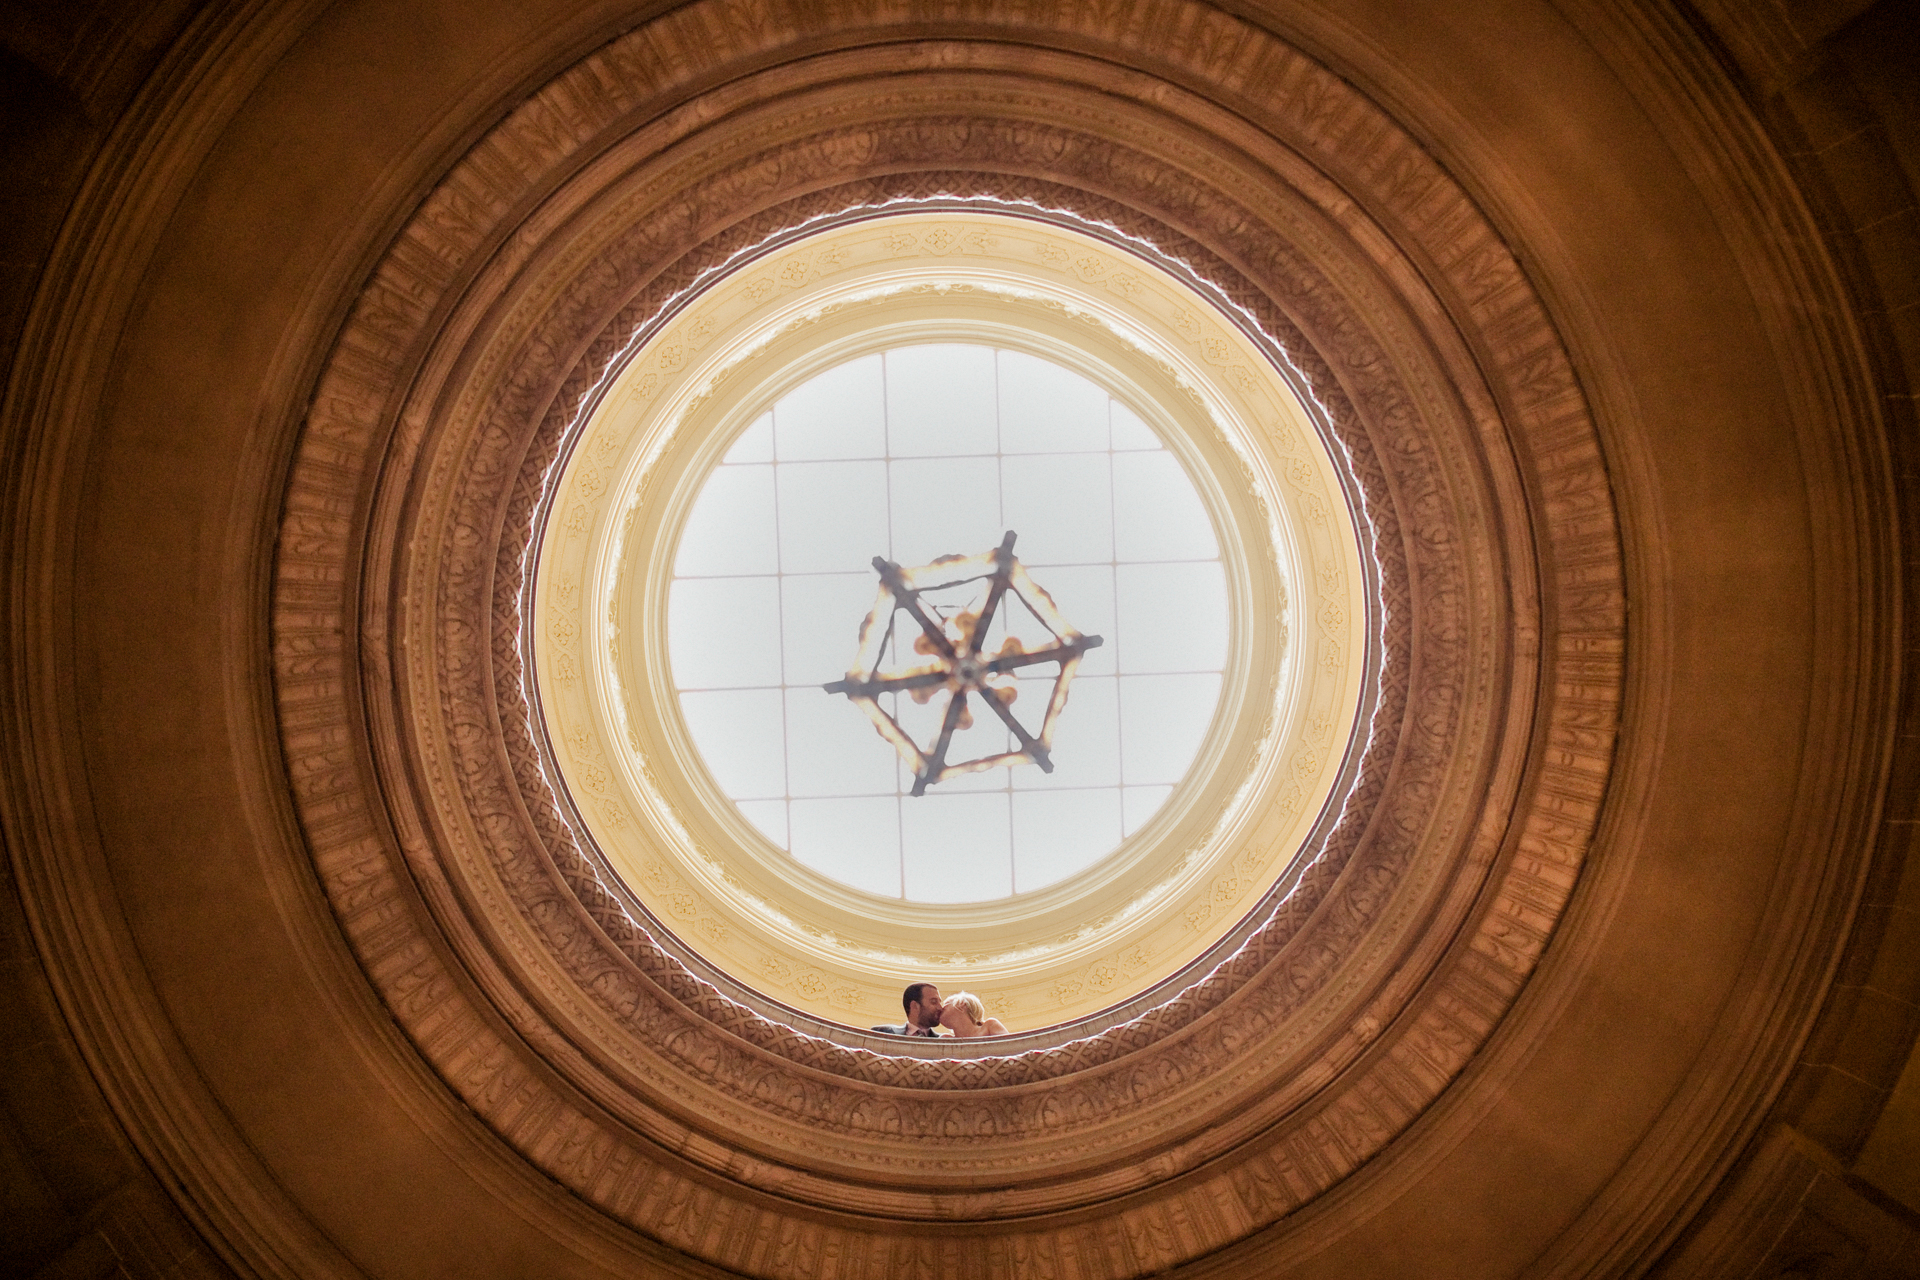 San Francisco City Hall Elopement Images from California   Looking up at the large rotunda of City Hall, the couple stands near the top